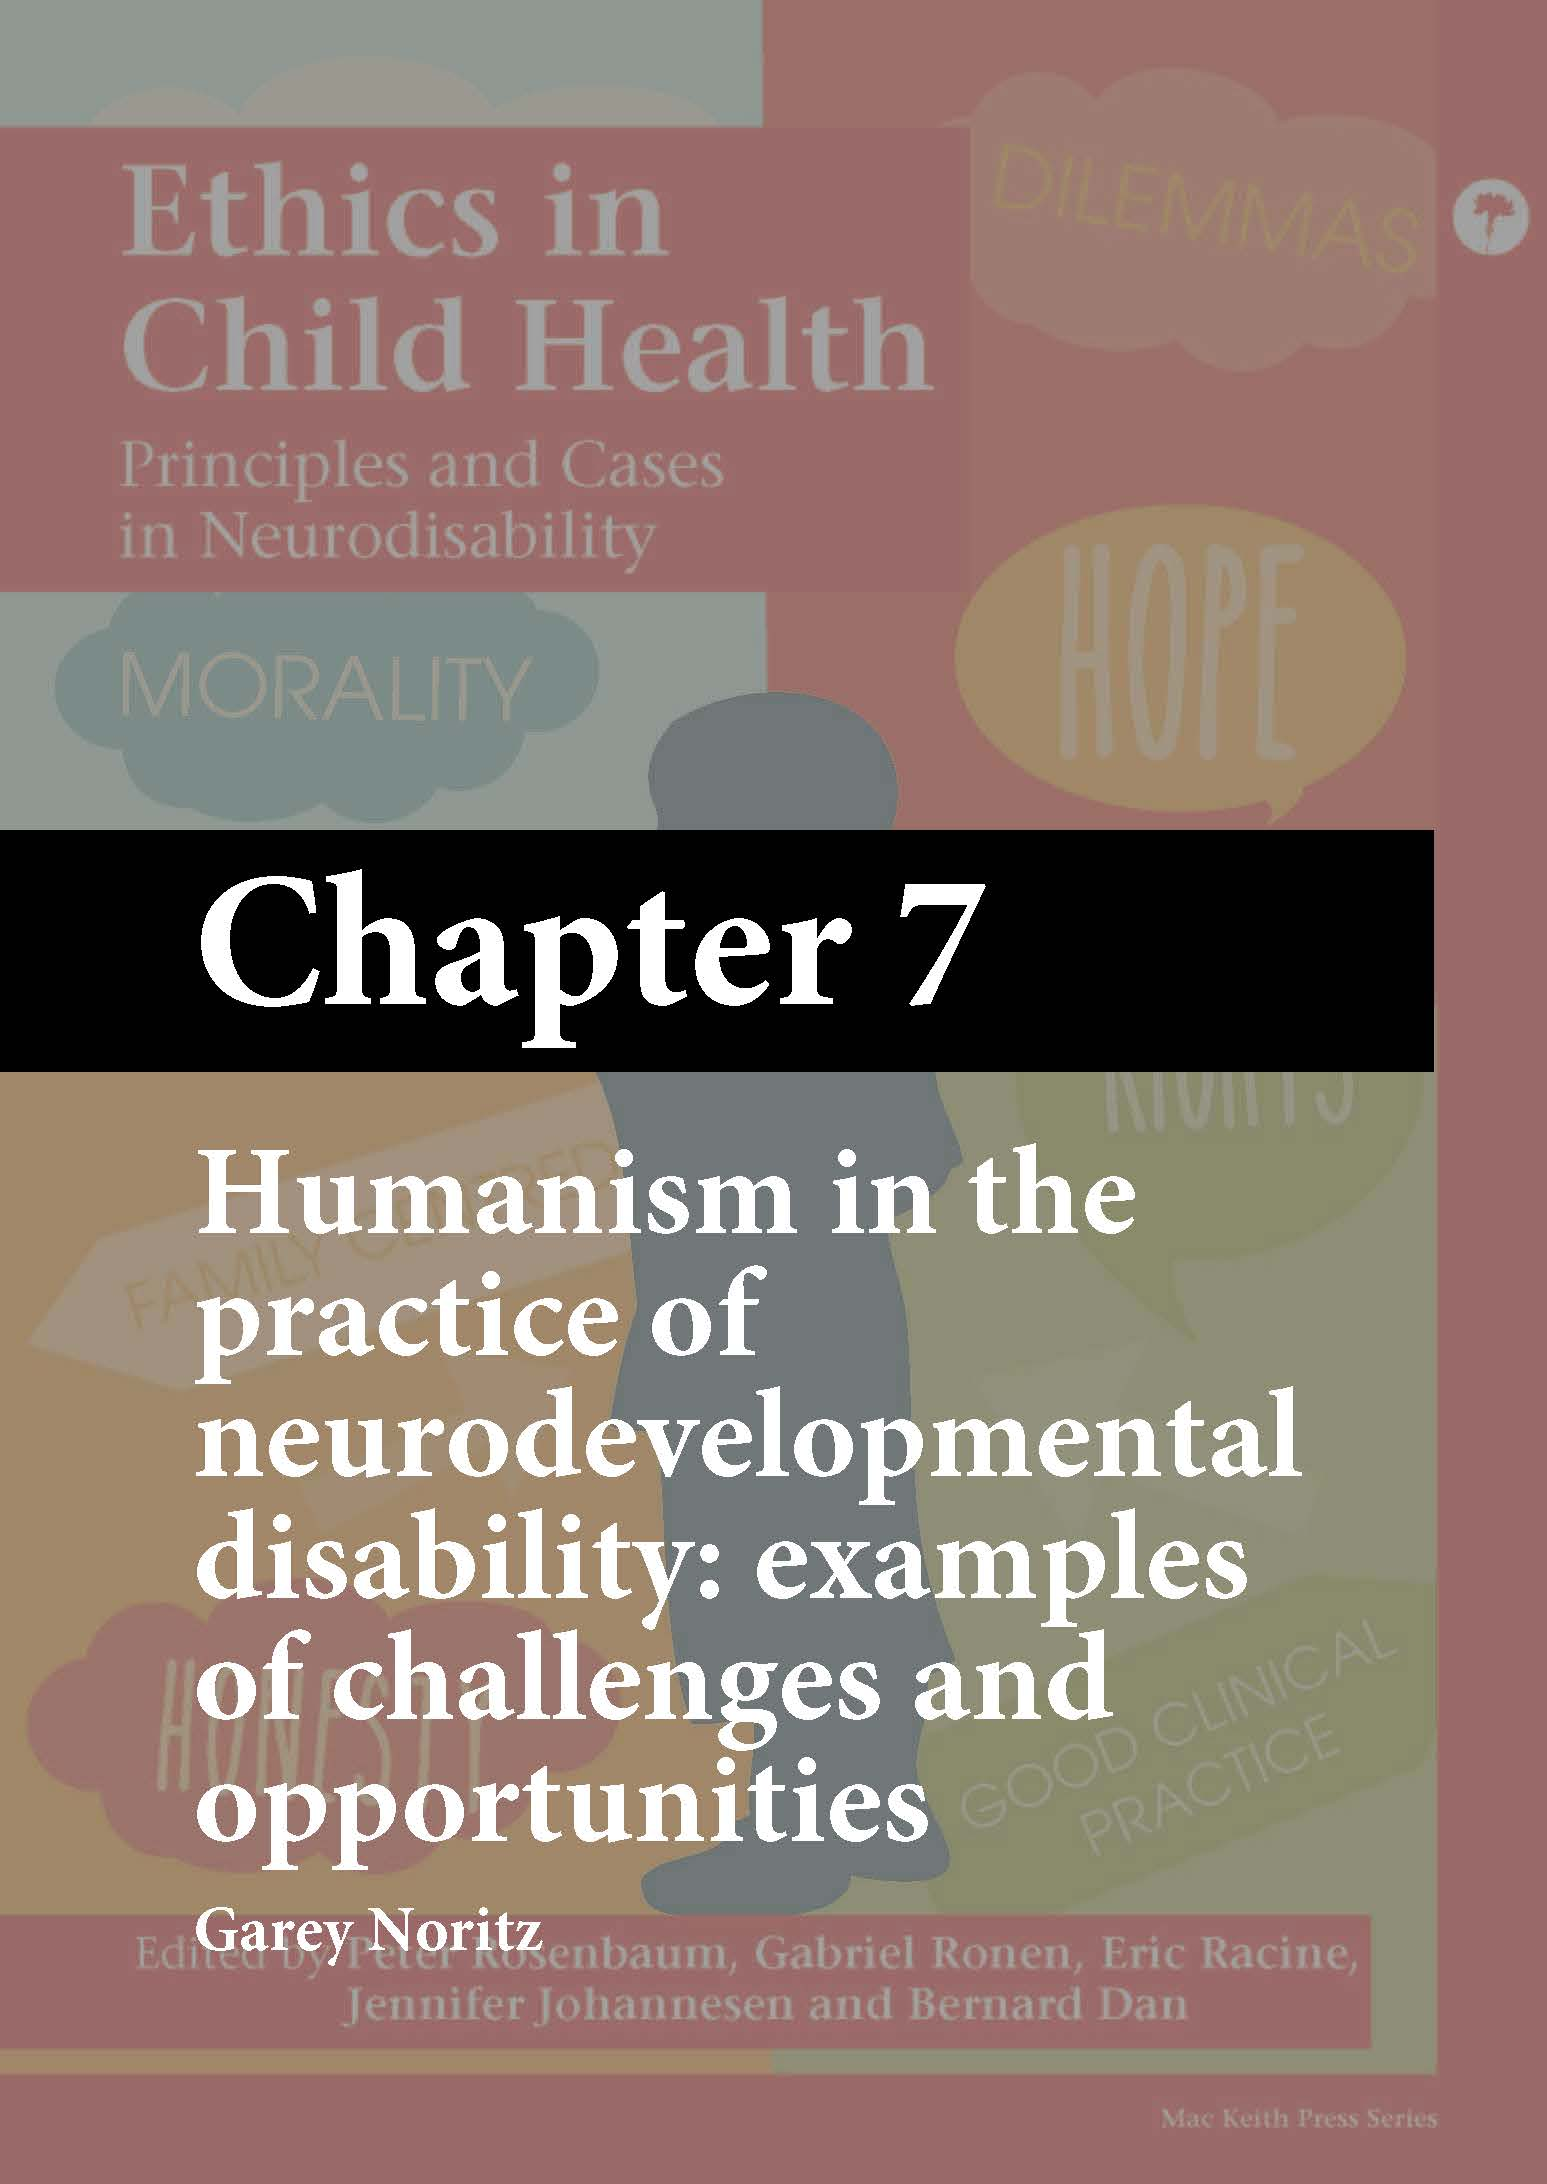 Mac Keith Press book, Ethics in Child Health, Rosenbaum, Chapter 7 cover